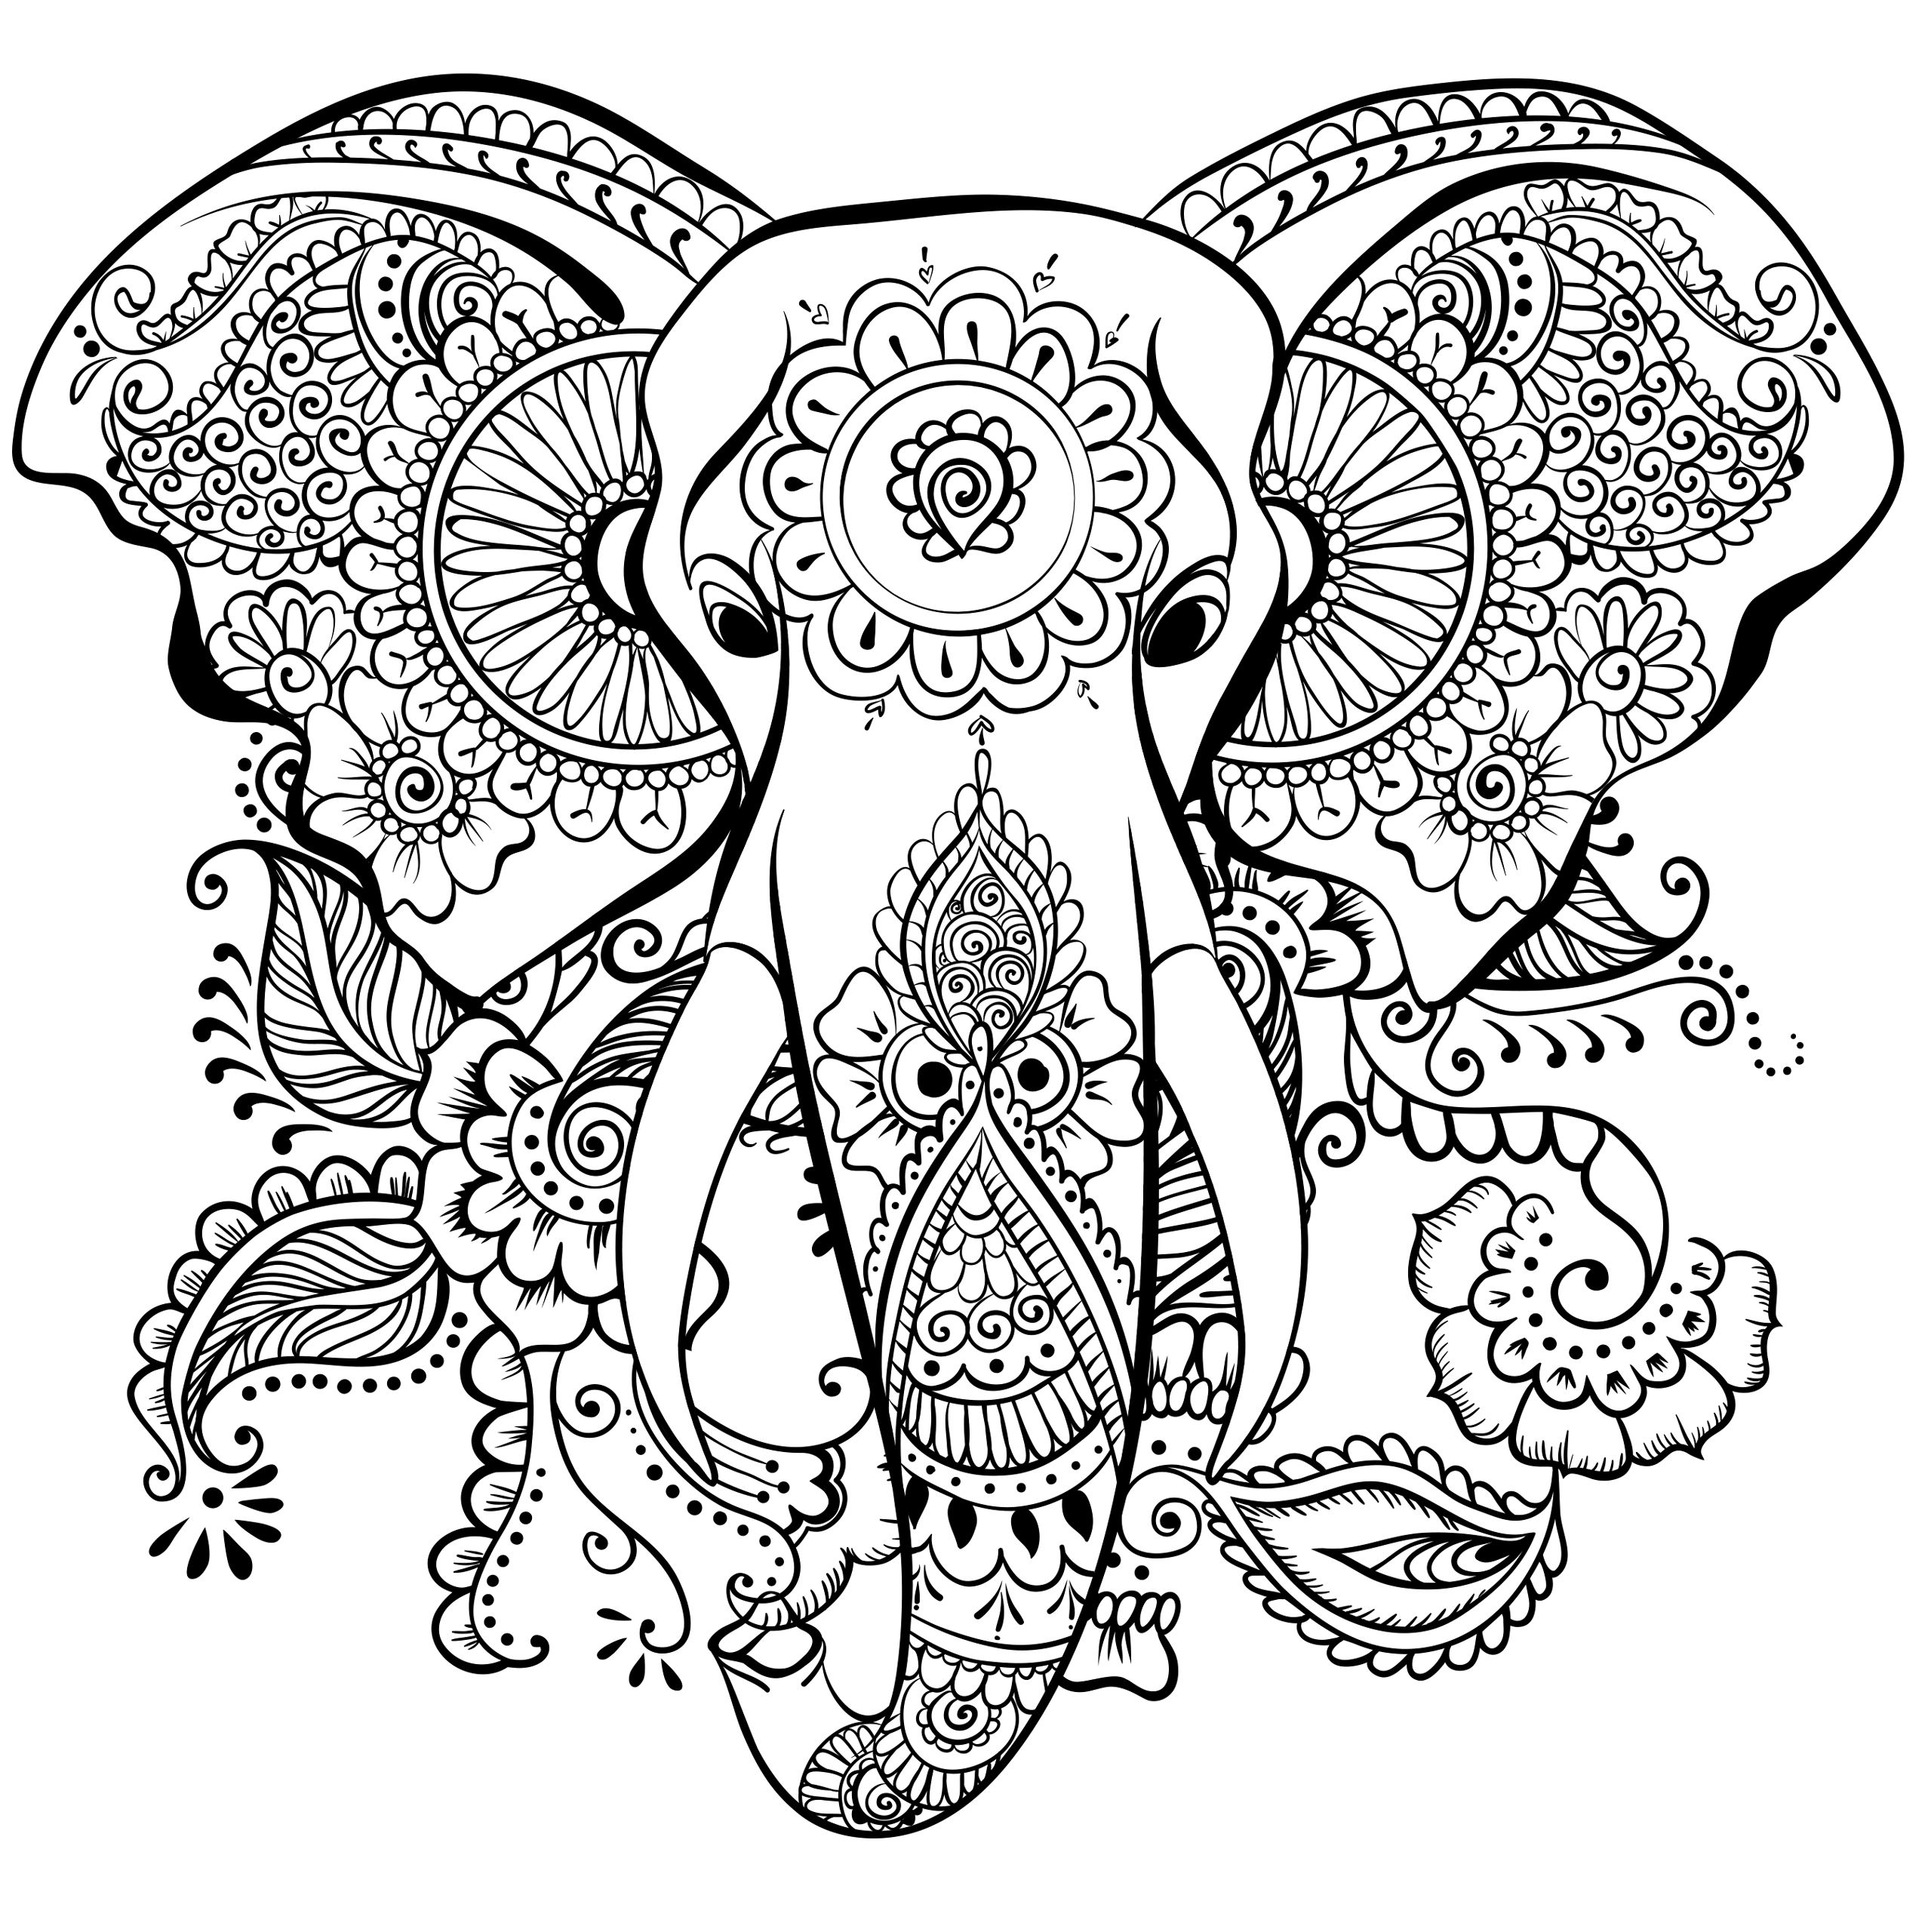 mandala coloring pages for adults elephant mandala coloring pages collection free coloring pages for mandala coloring adults